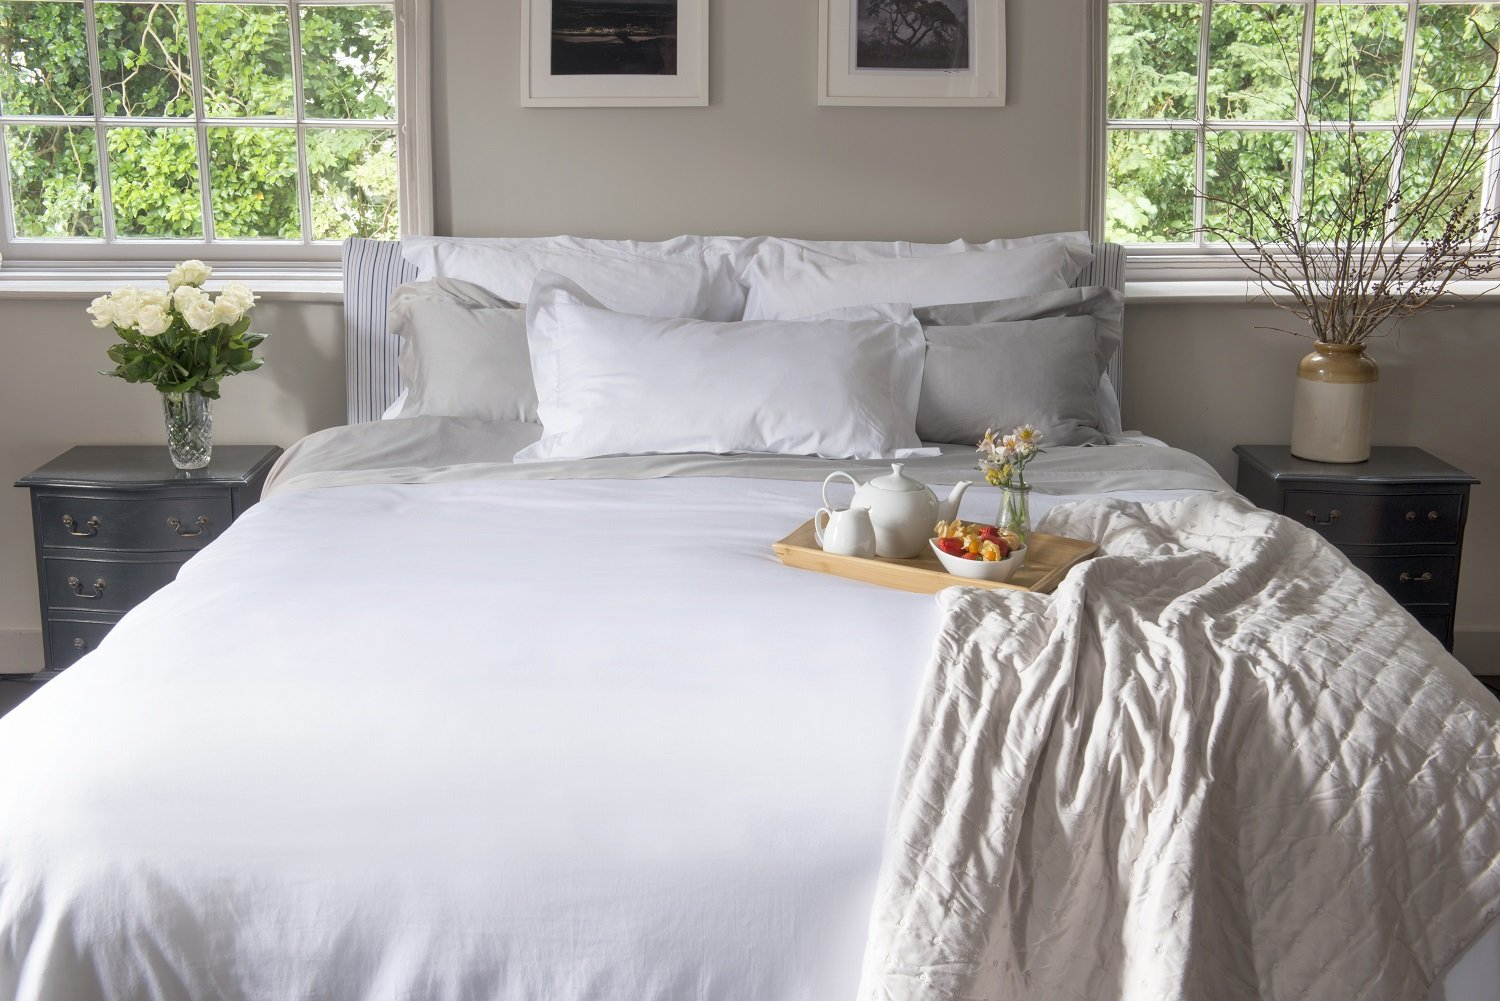 Why Thread Count Does Not Matter When Buying Sheets